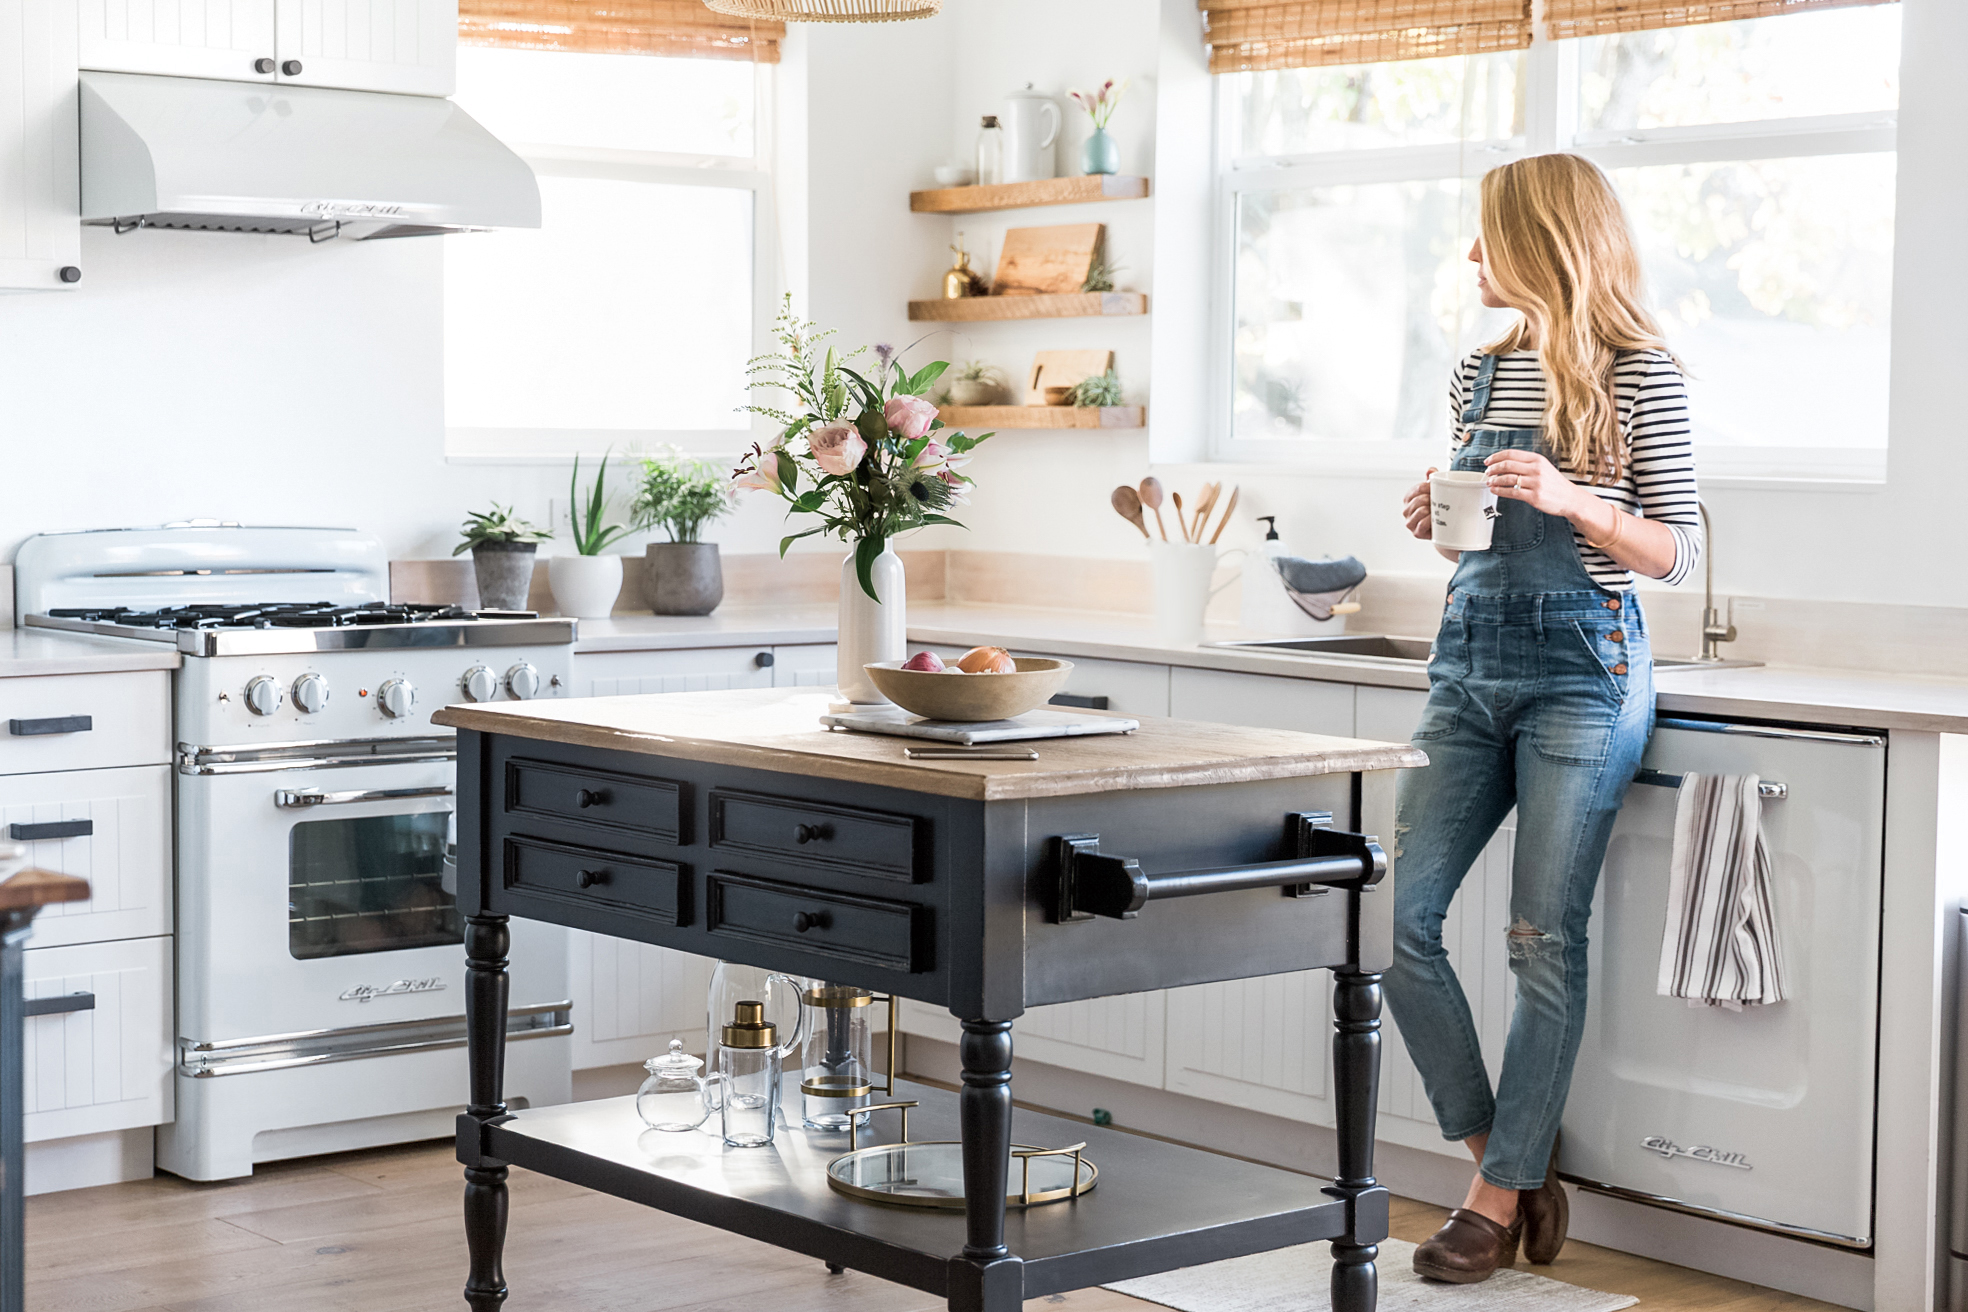 Photo of woman standing in kitchen